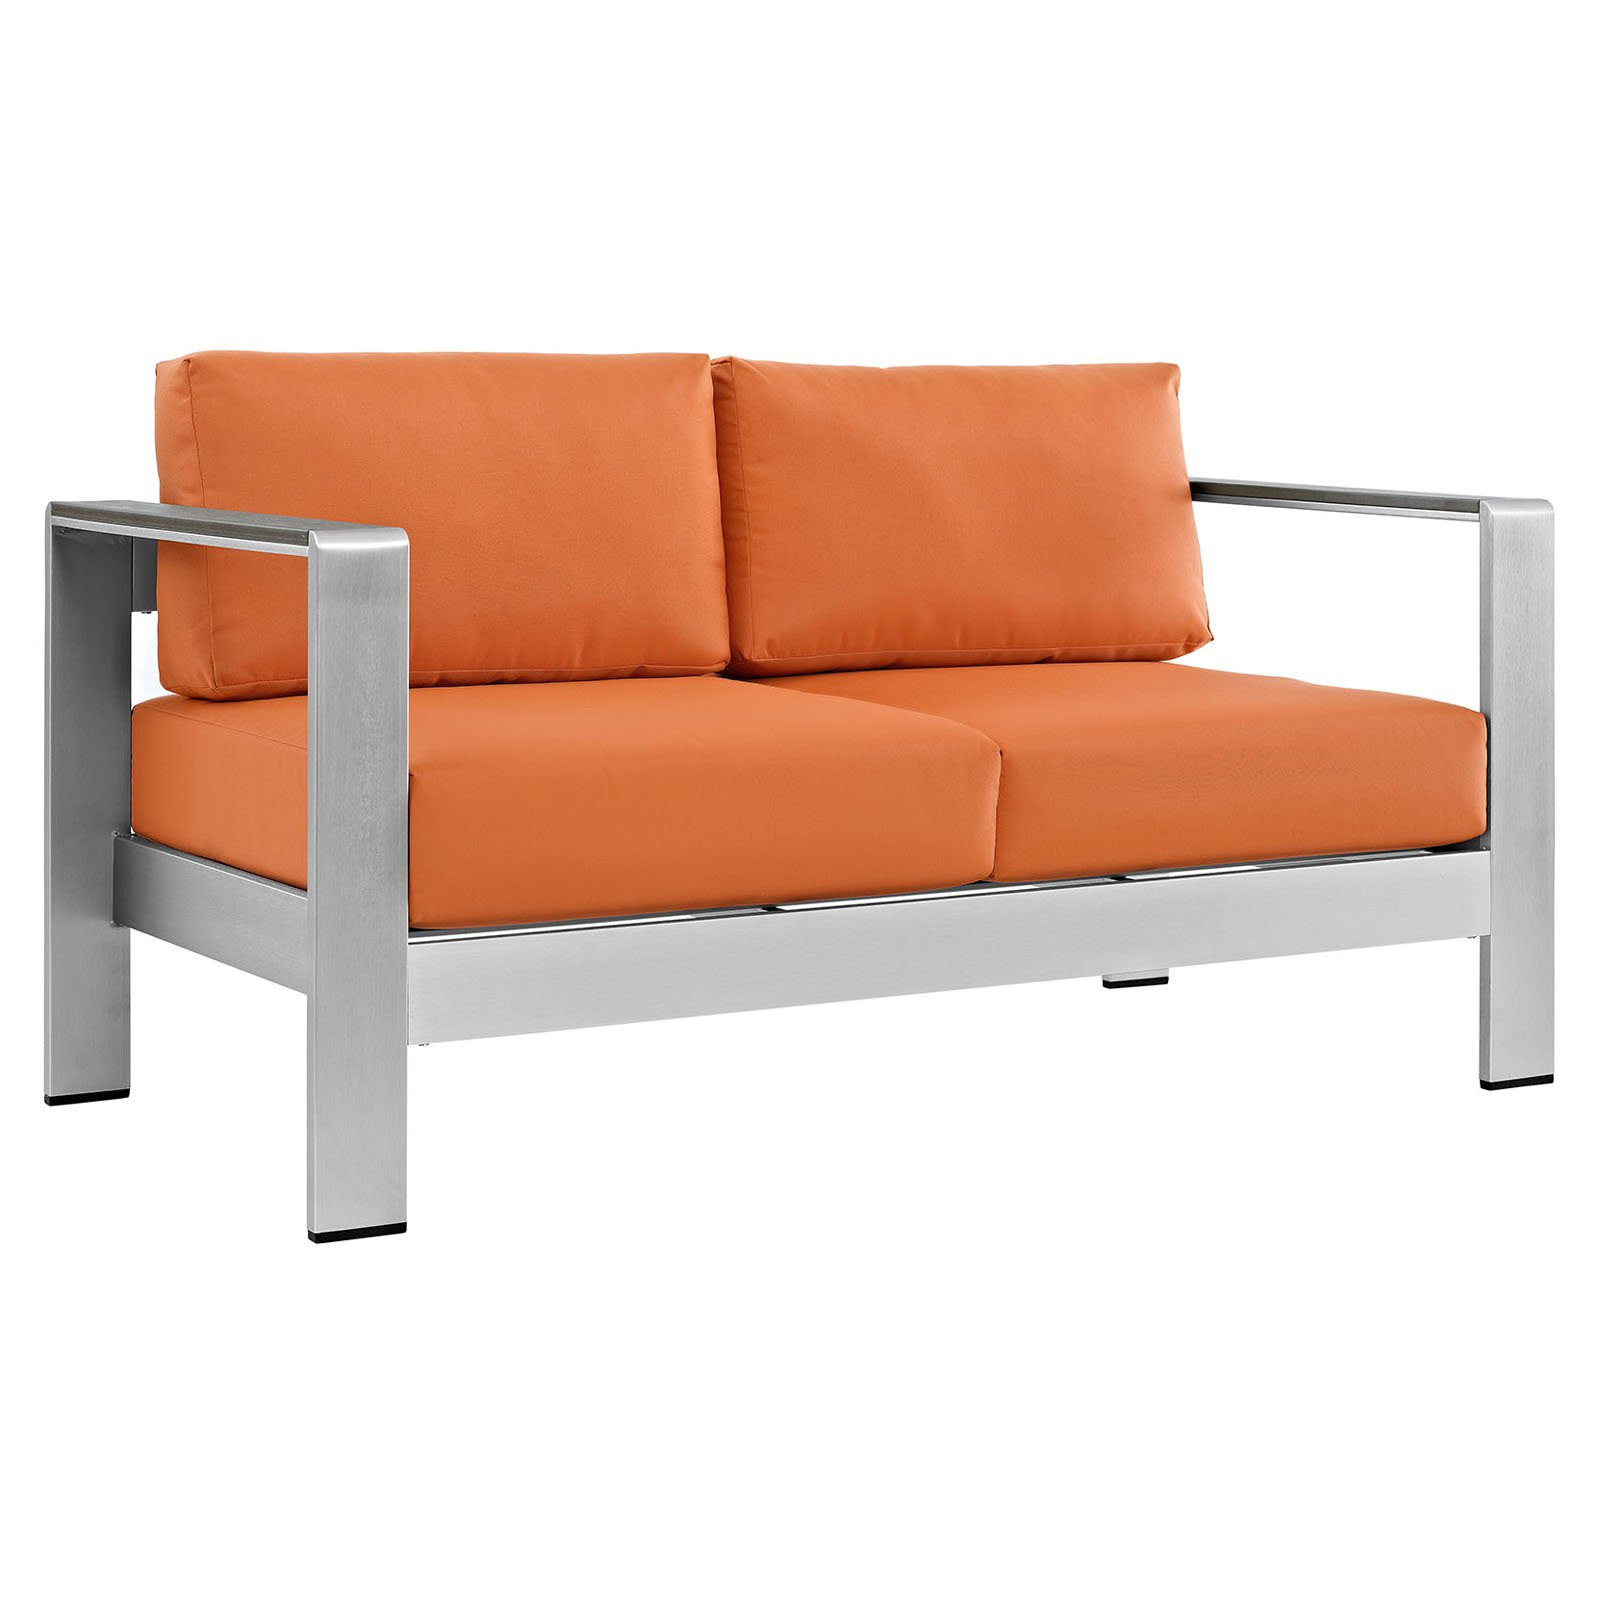 Modway Shore Outdoor Patio Aluminum Loveseat, Multiple Colors Available